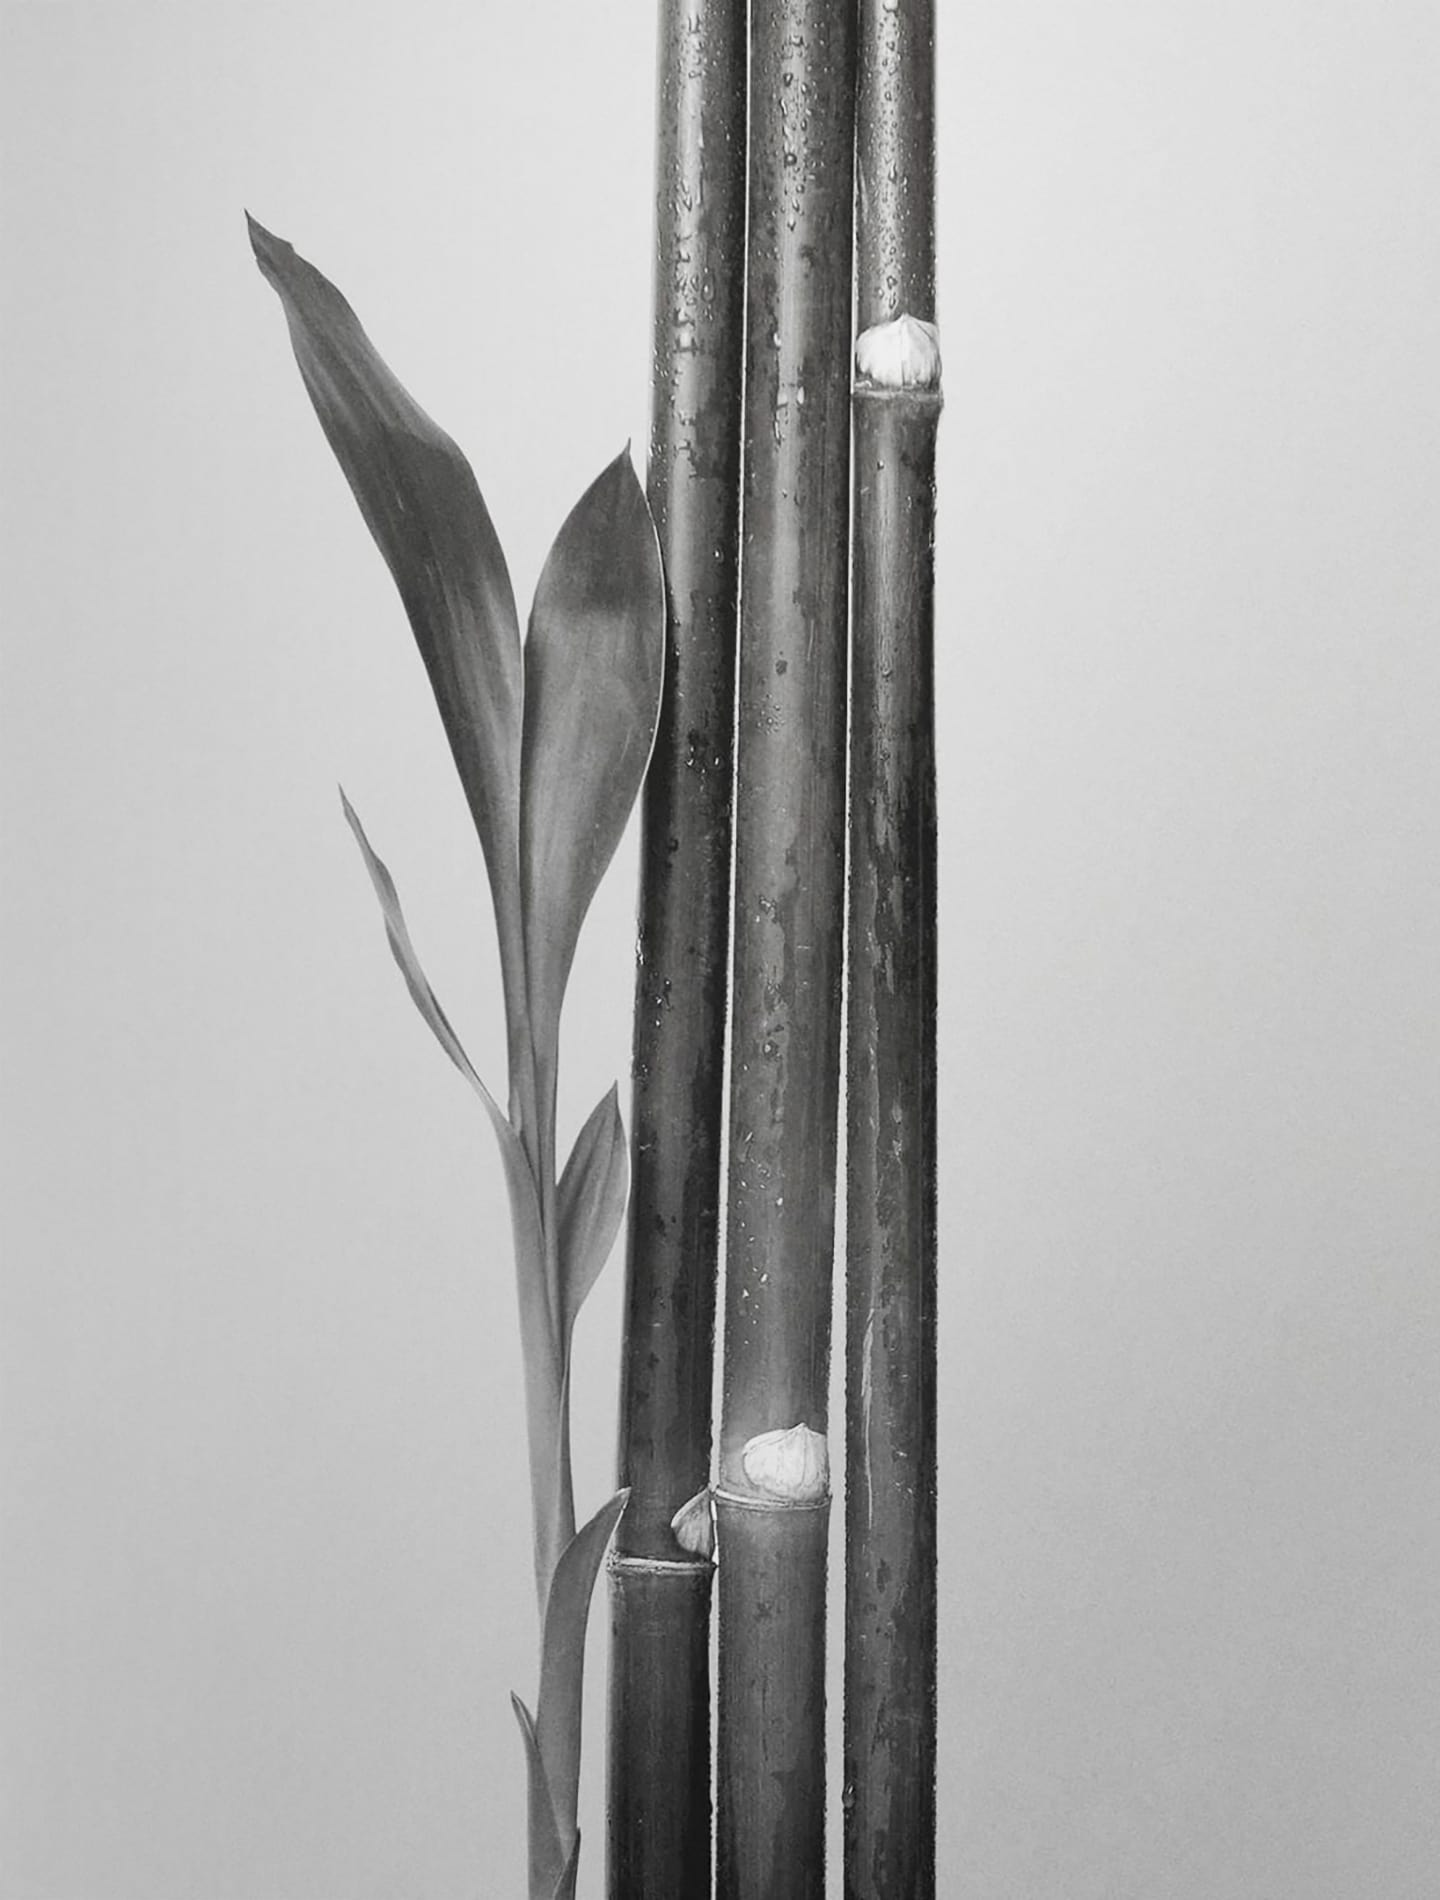 Bamboo stalks and leaf (black and white)